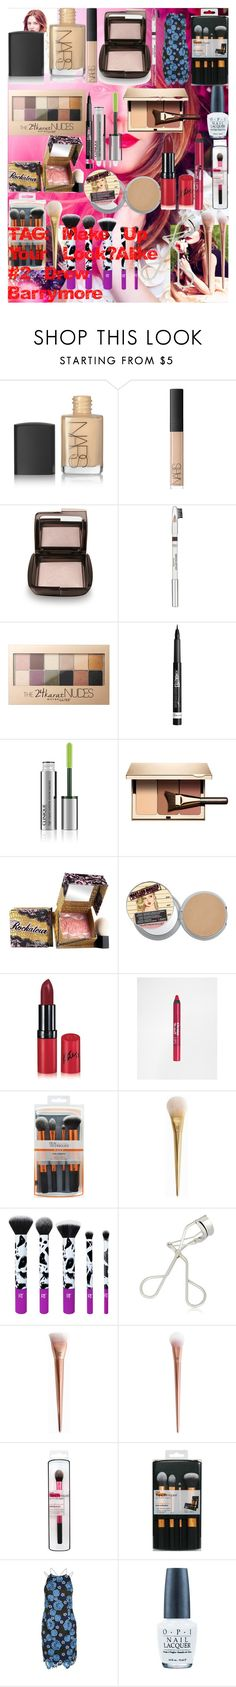 """""""TAG: Make Up Your Look-Alike #2 - Drew Barrymore"""" by oroartye-1 on Polyvore featuring beauty, NARS Cosmetics, Hourglass Cosmetics, L'Oréal Paris, Maybelline, Rimmel, Clinique, Clarins, Benefit and Barry M"""